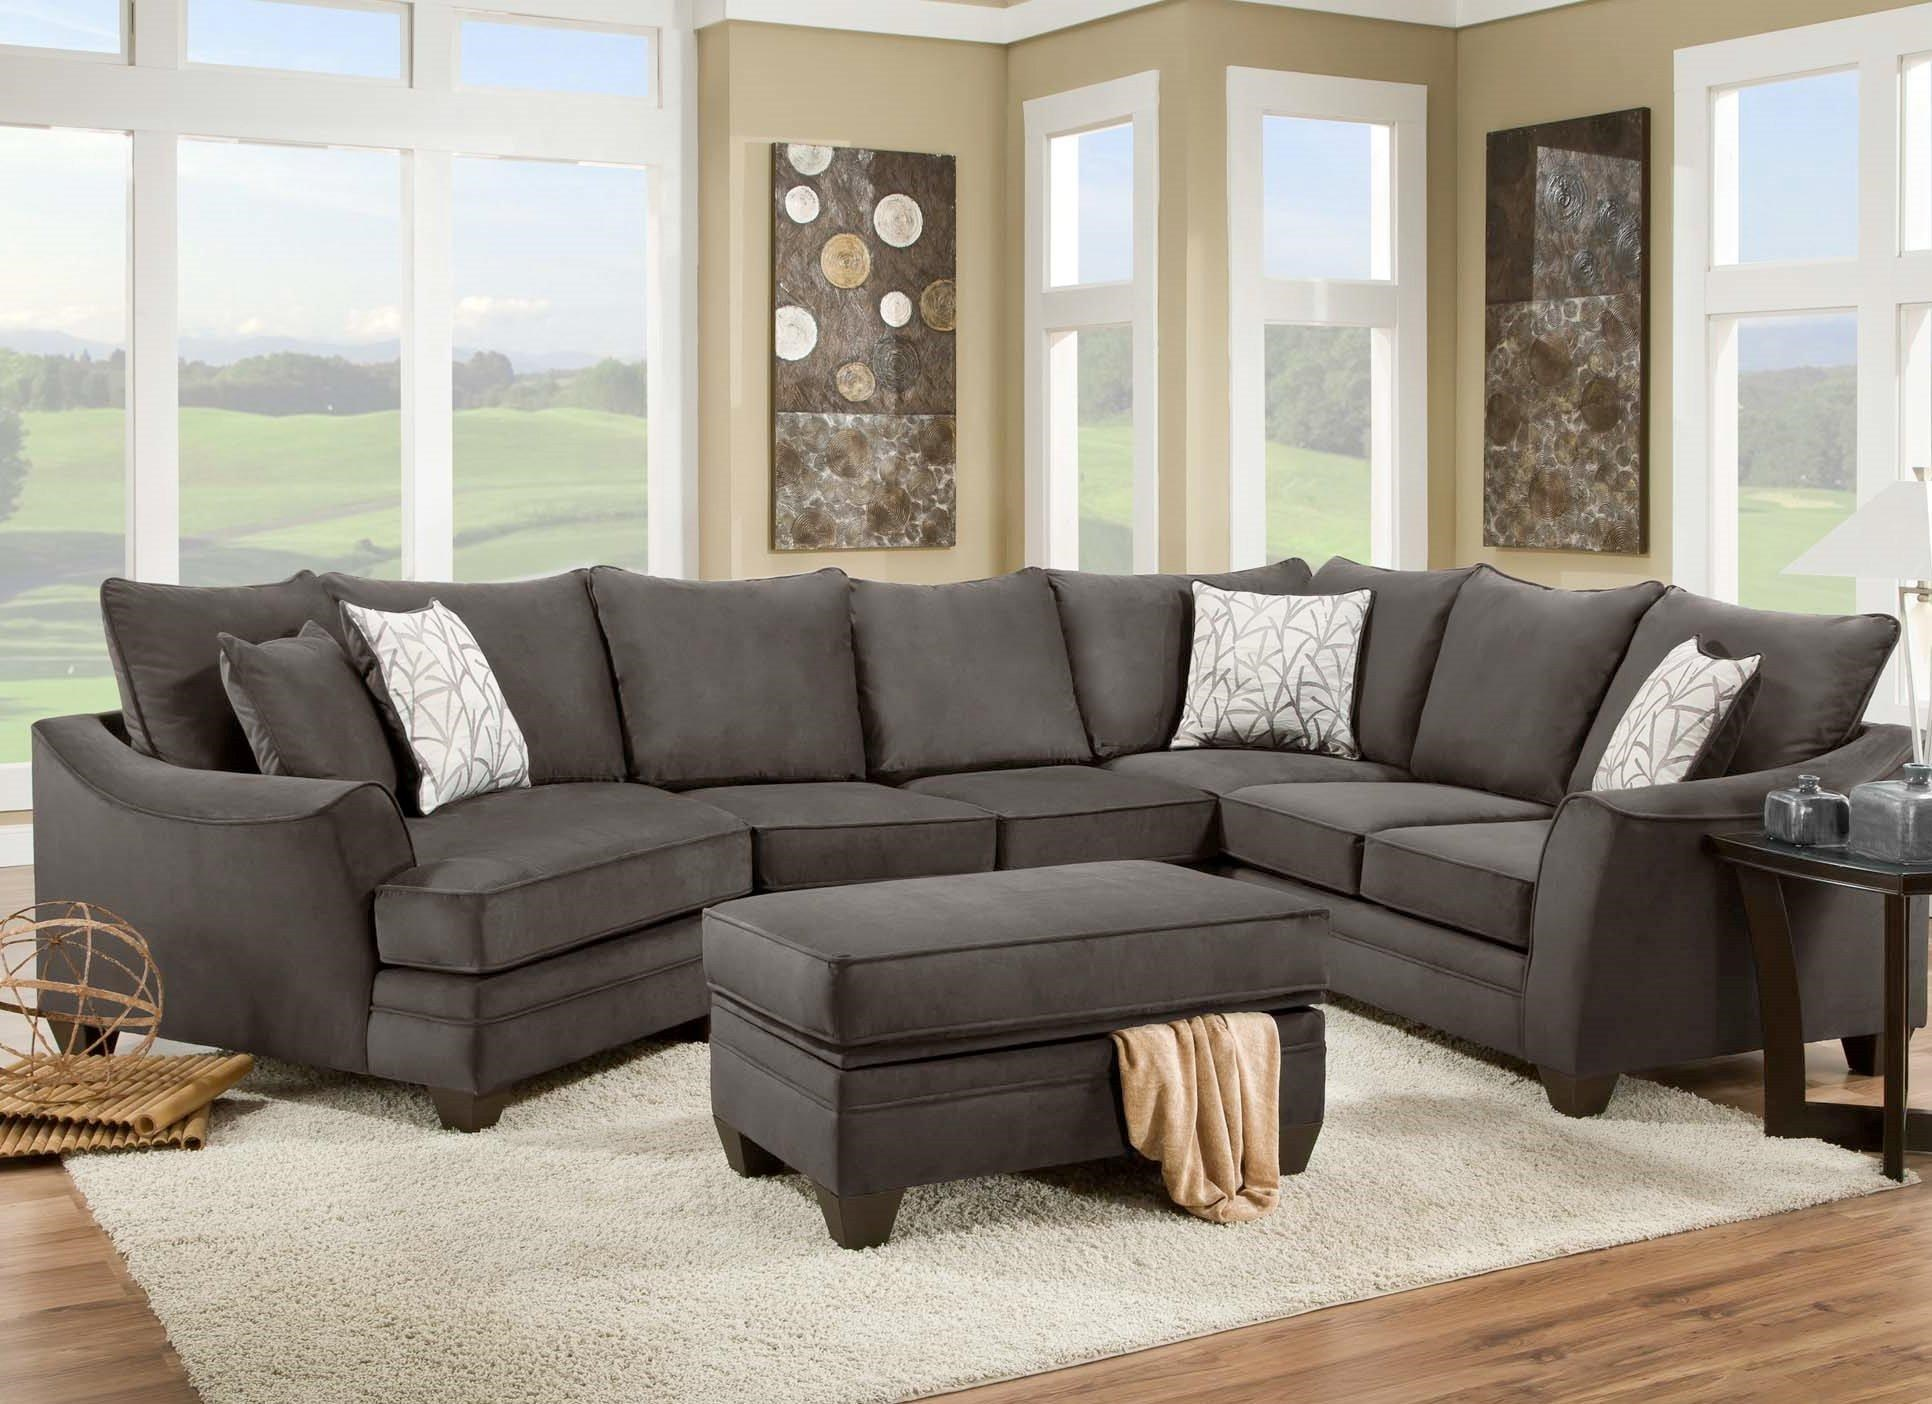 American Furniture 3810 Sectional Sofa That Seats 5 With Left Side Cuddler    Miskelly Furniture   Sofa Sectional